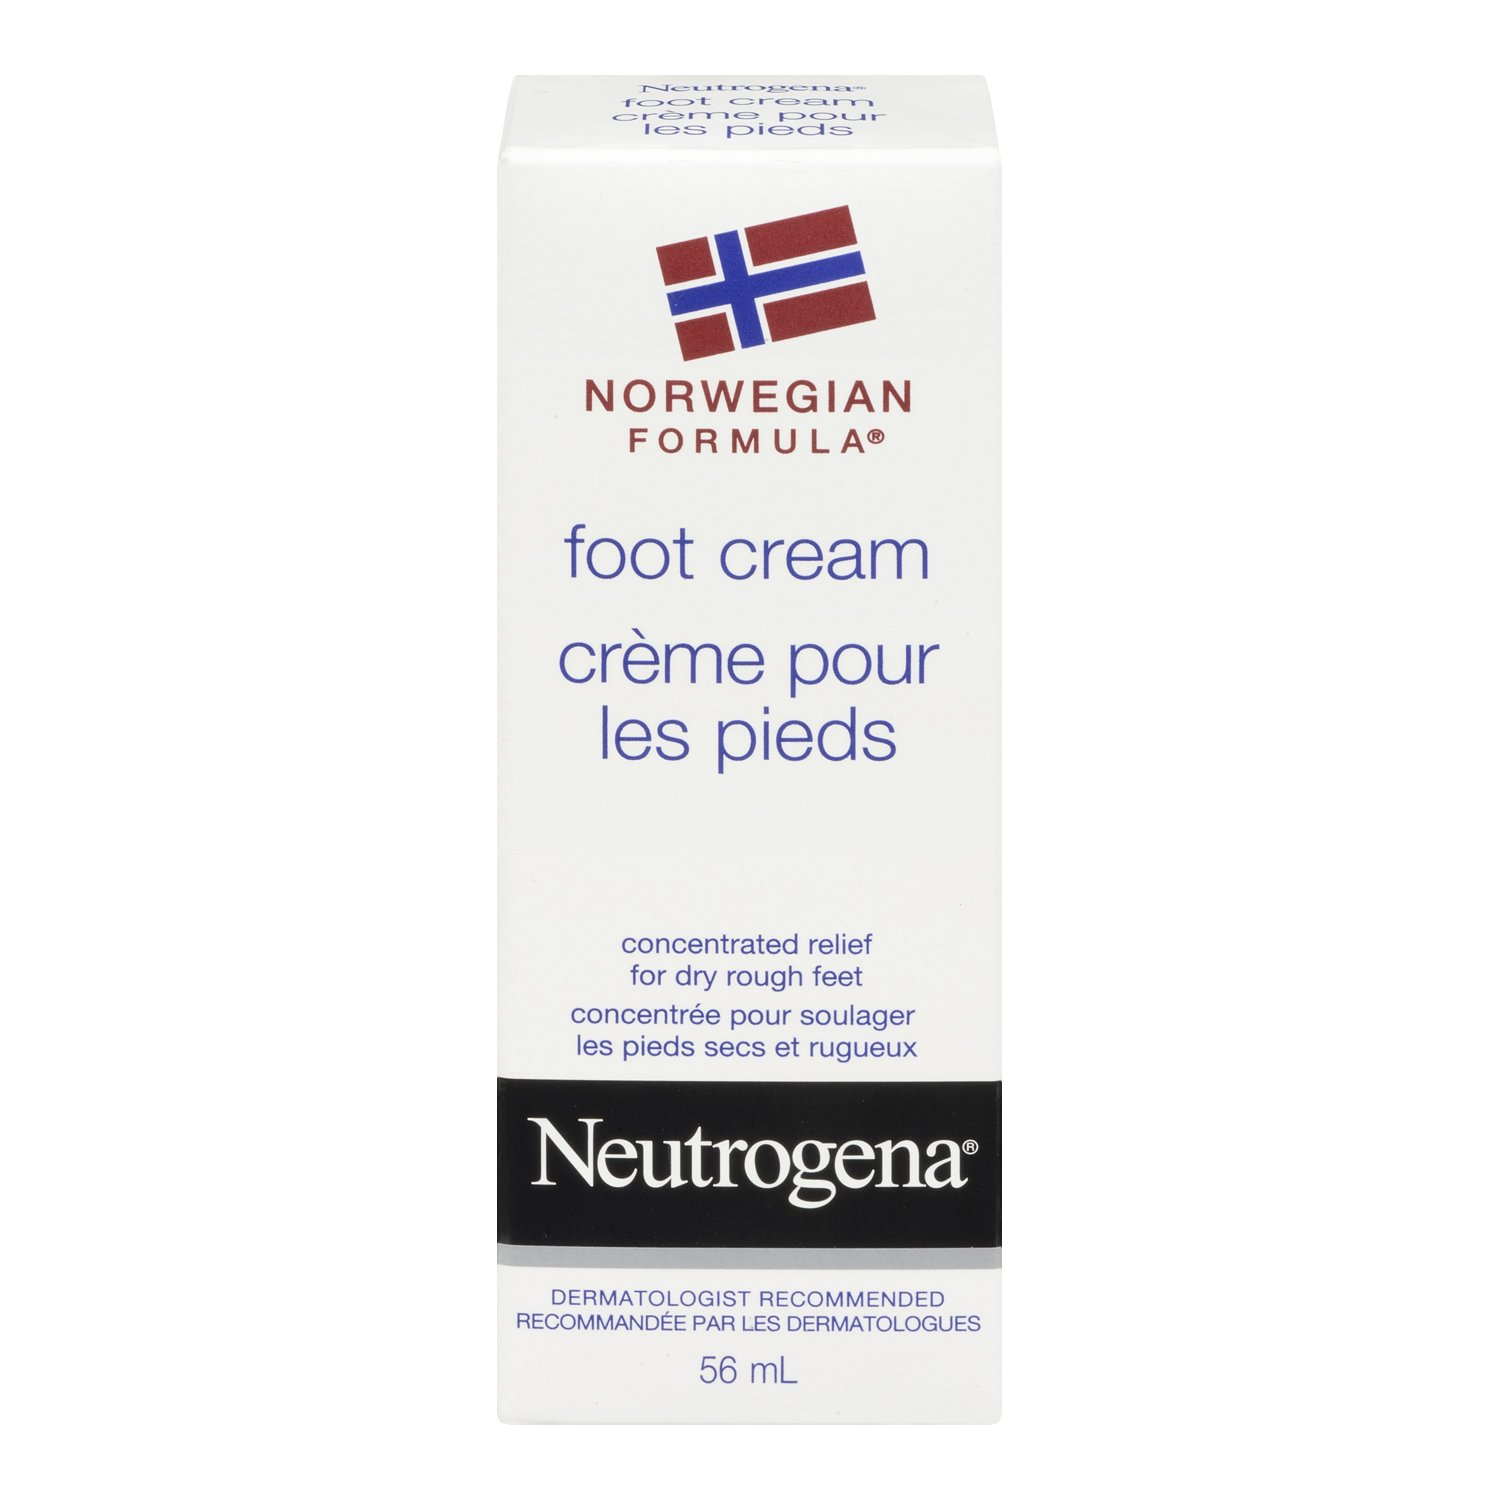 Neutrogena Norwegian Formula Foot Cream, 56ml